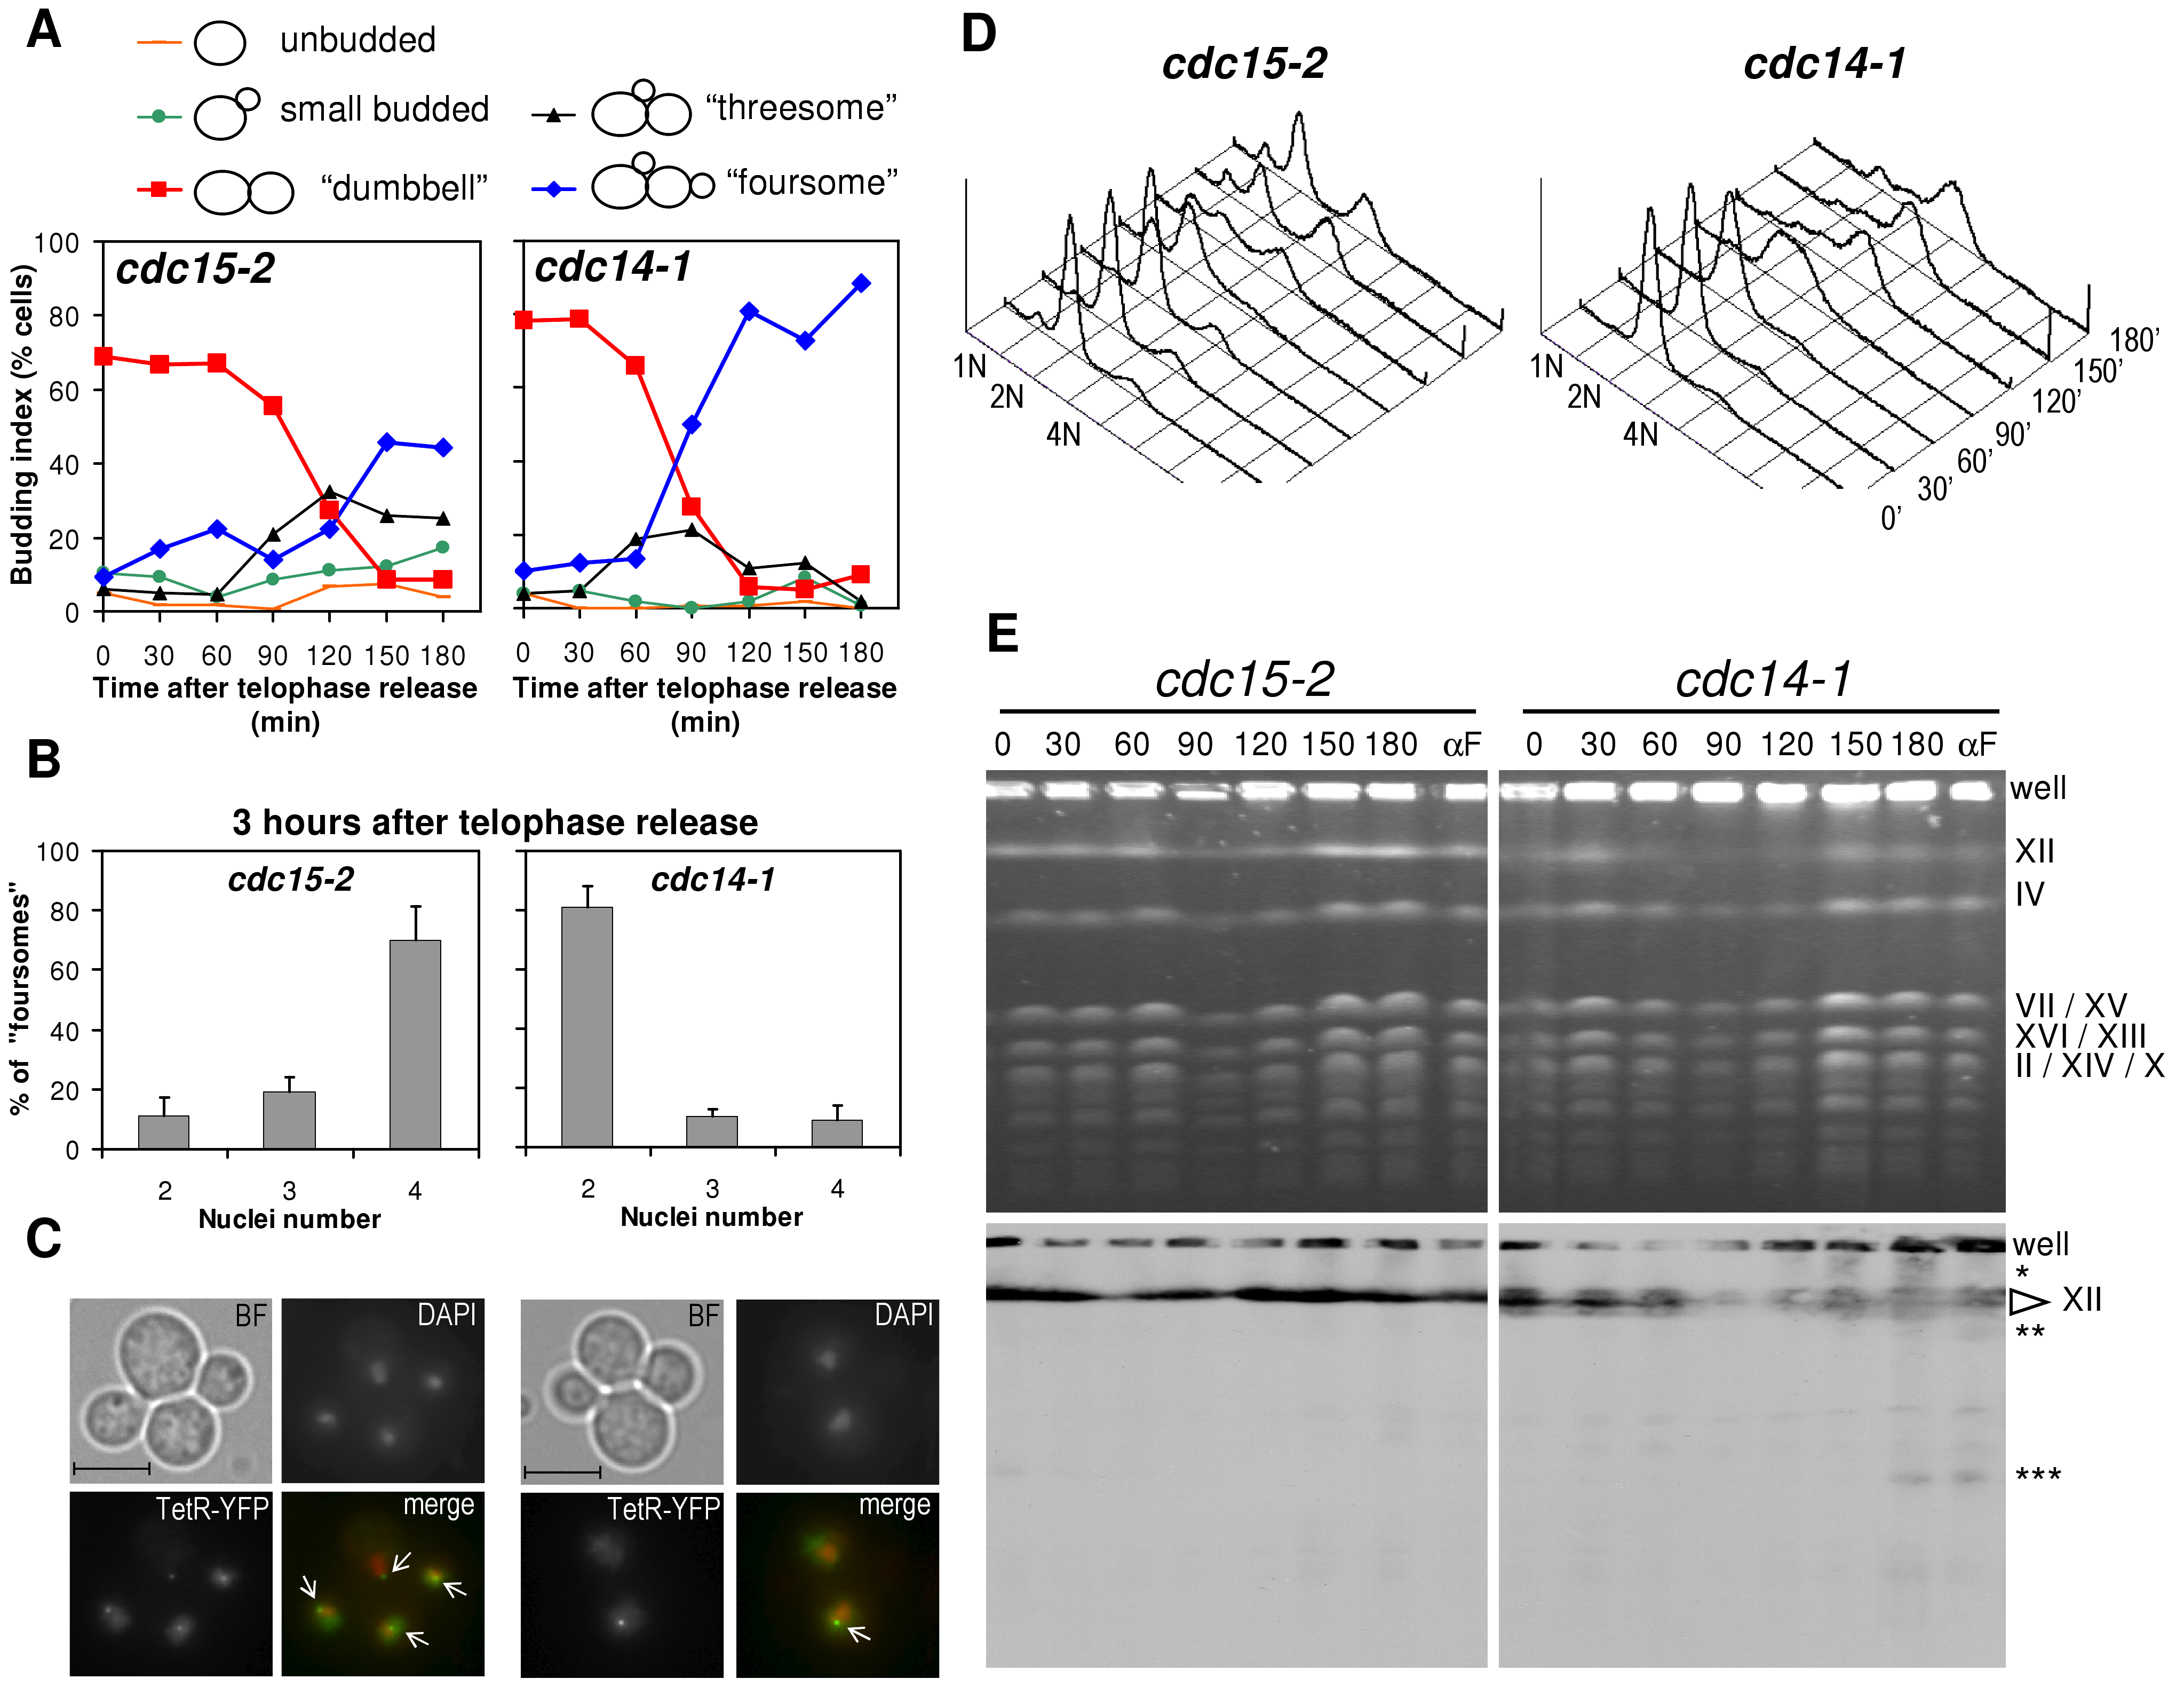 Cells arrest in G2 after a <i>cdc14-1</i> release with chromosome XII integrity compromised.